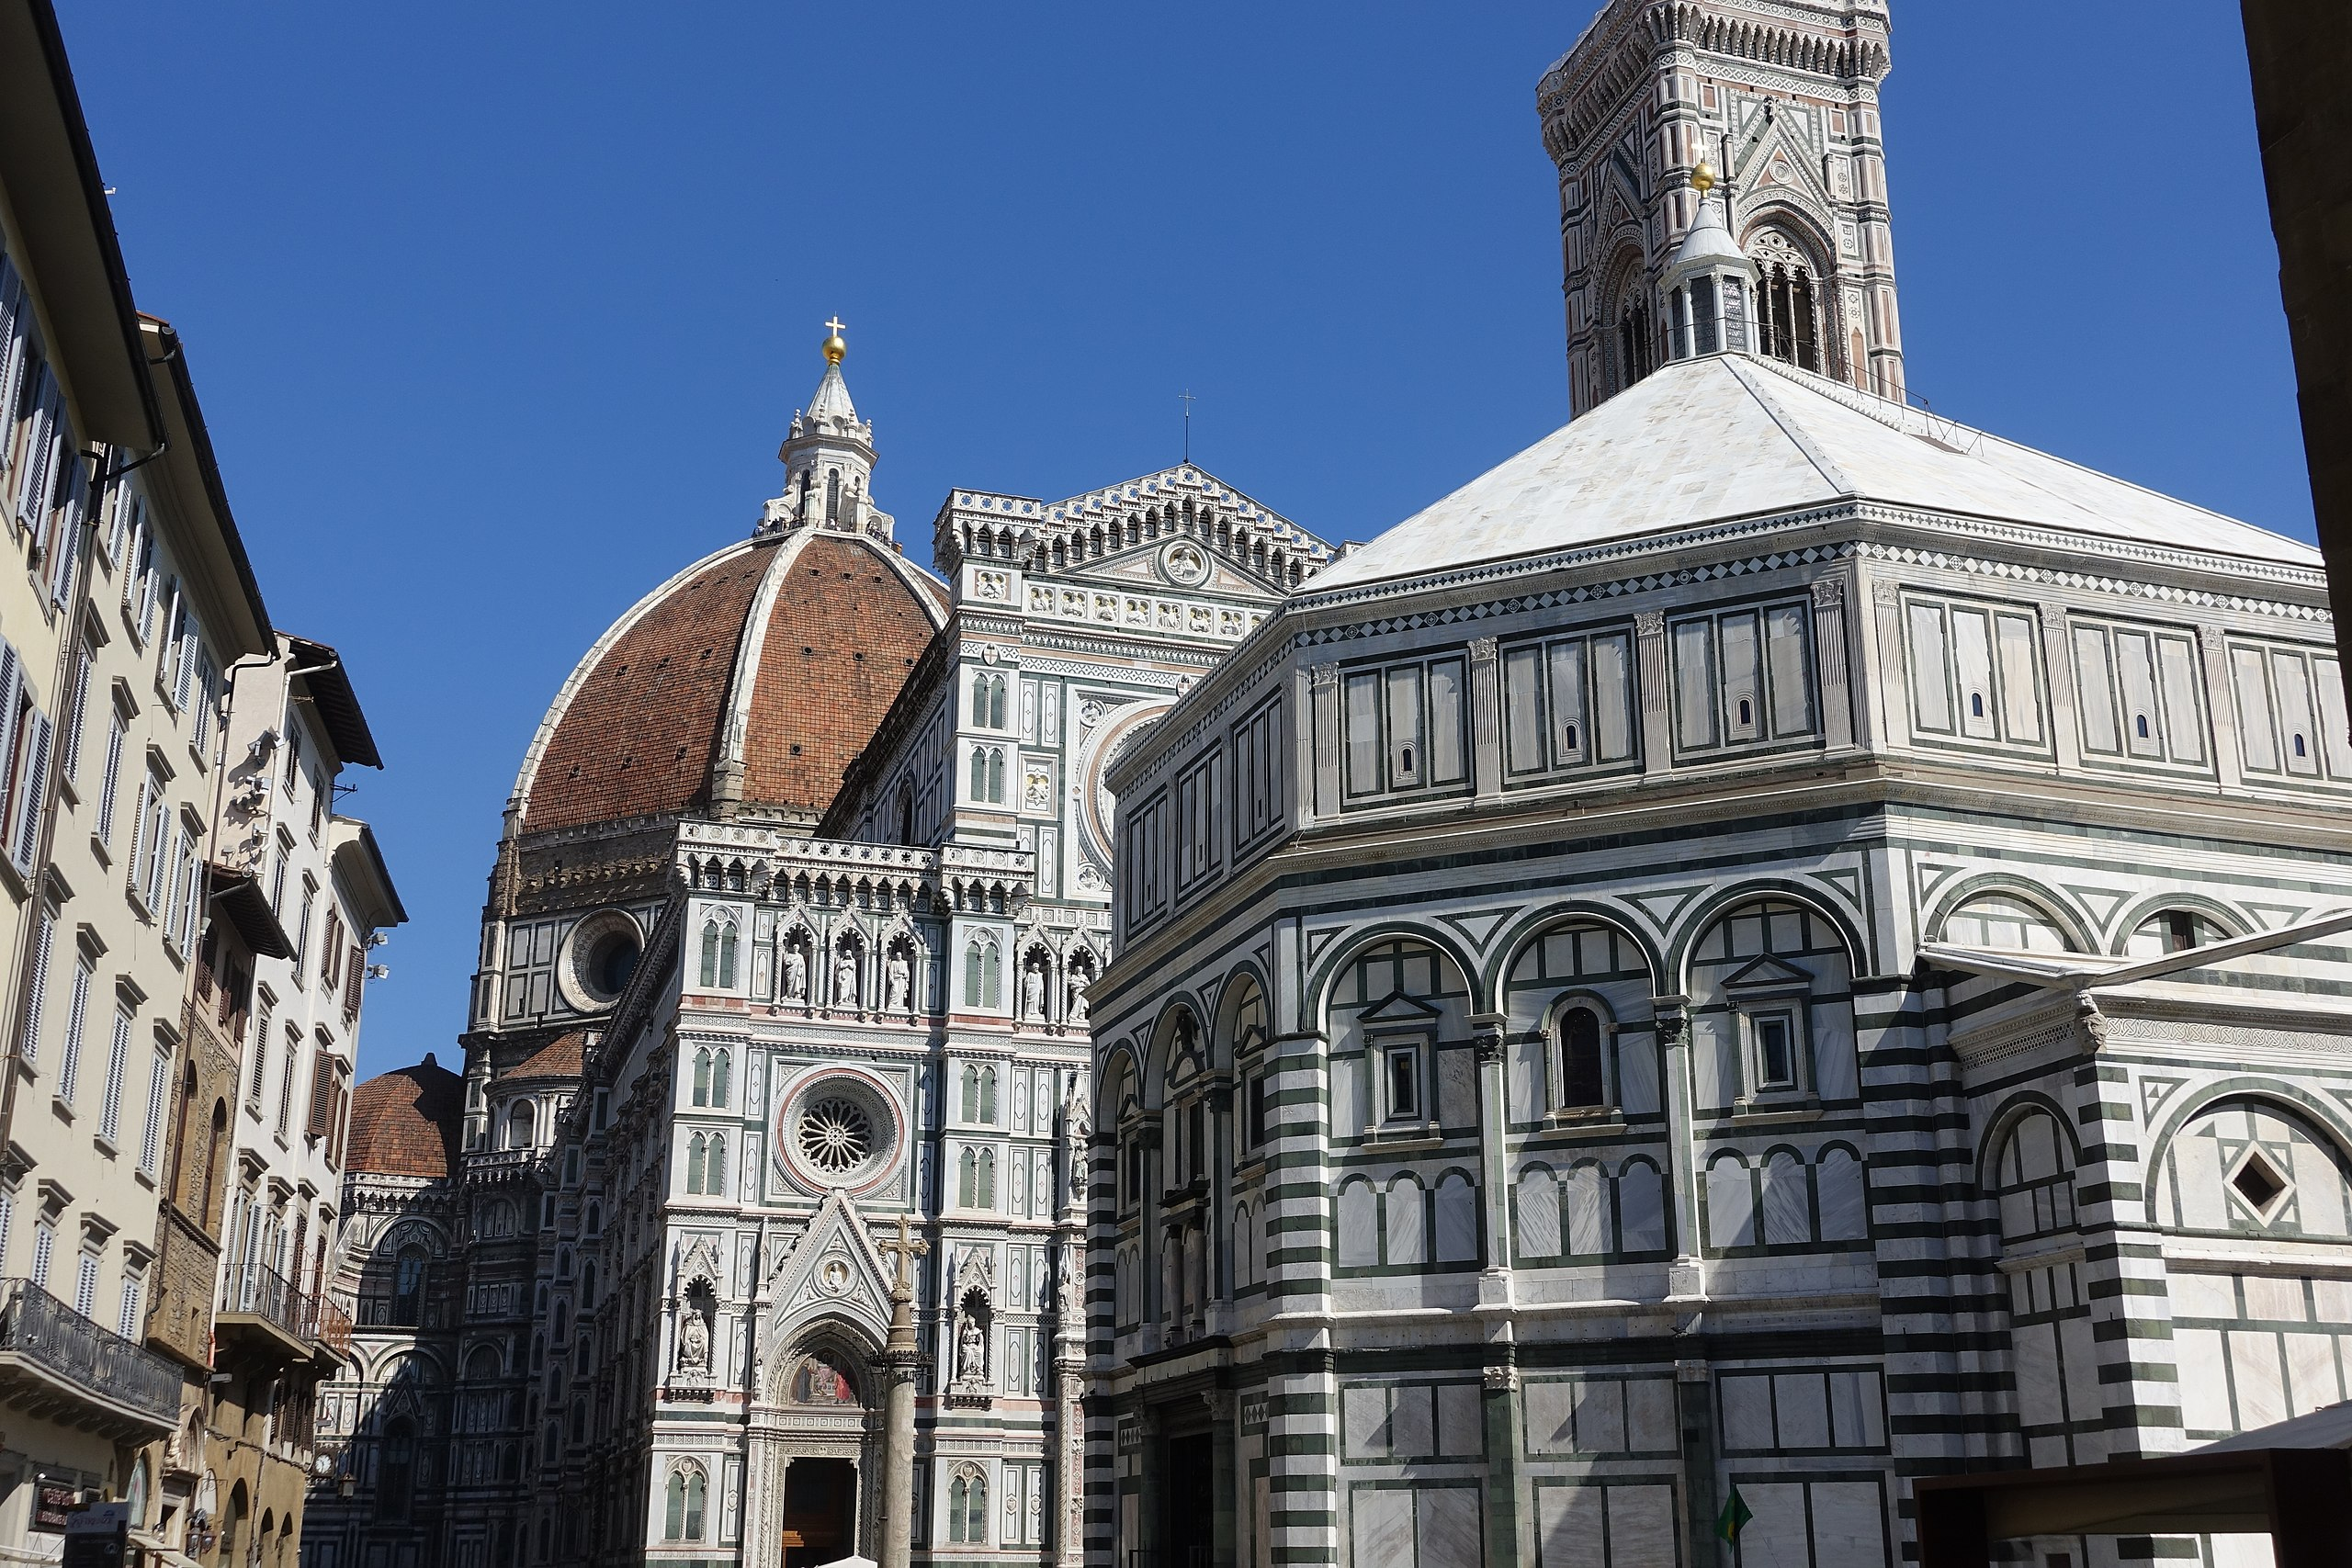 Baptistery and the Duomo, Florence, Italy.